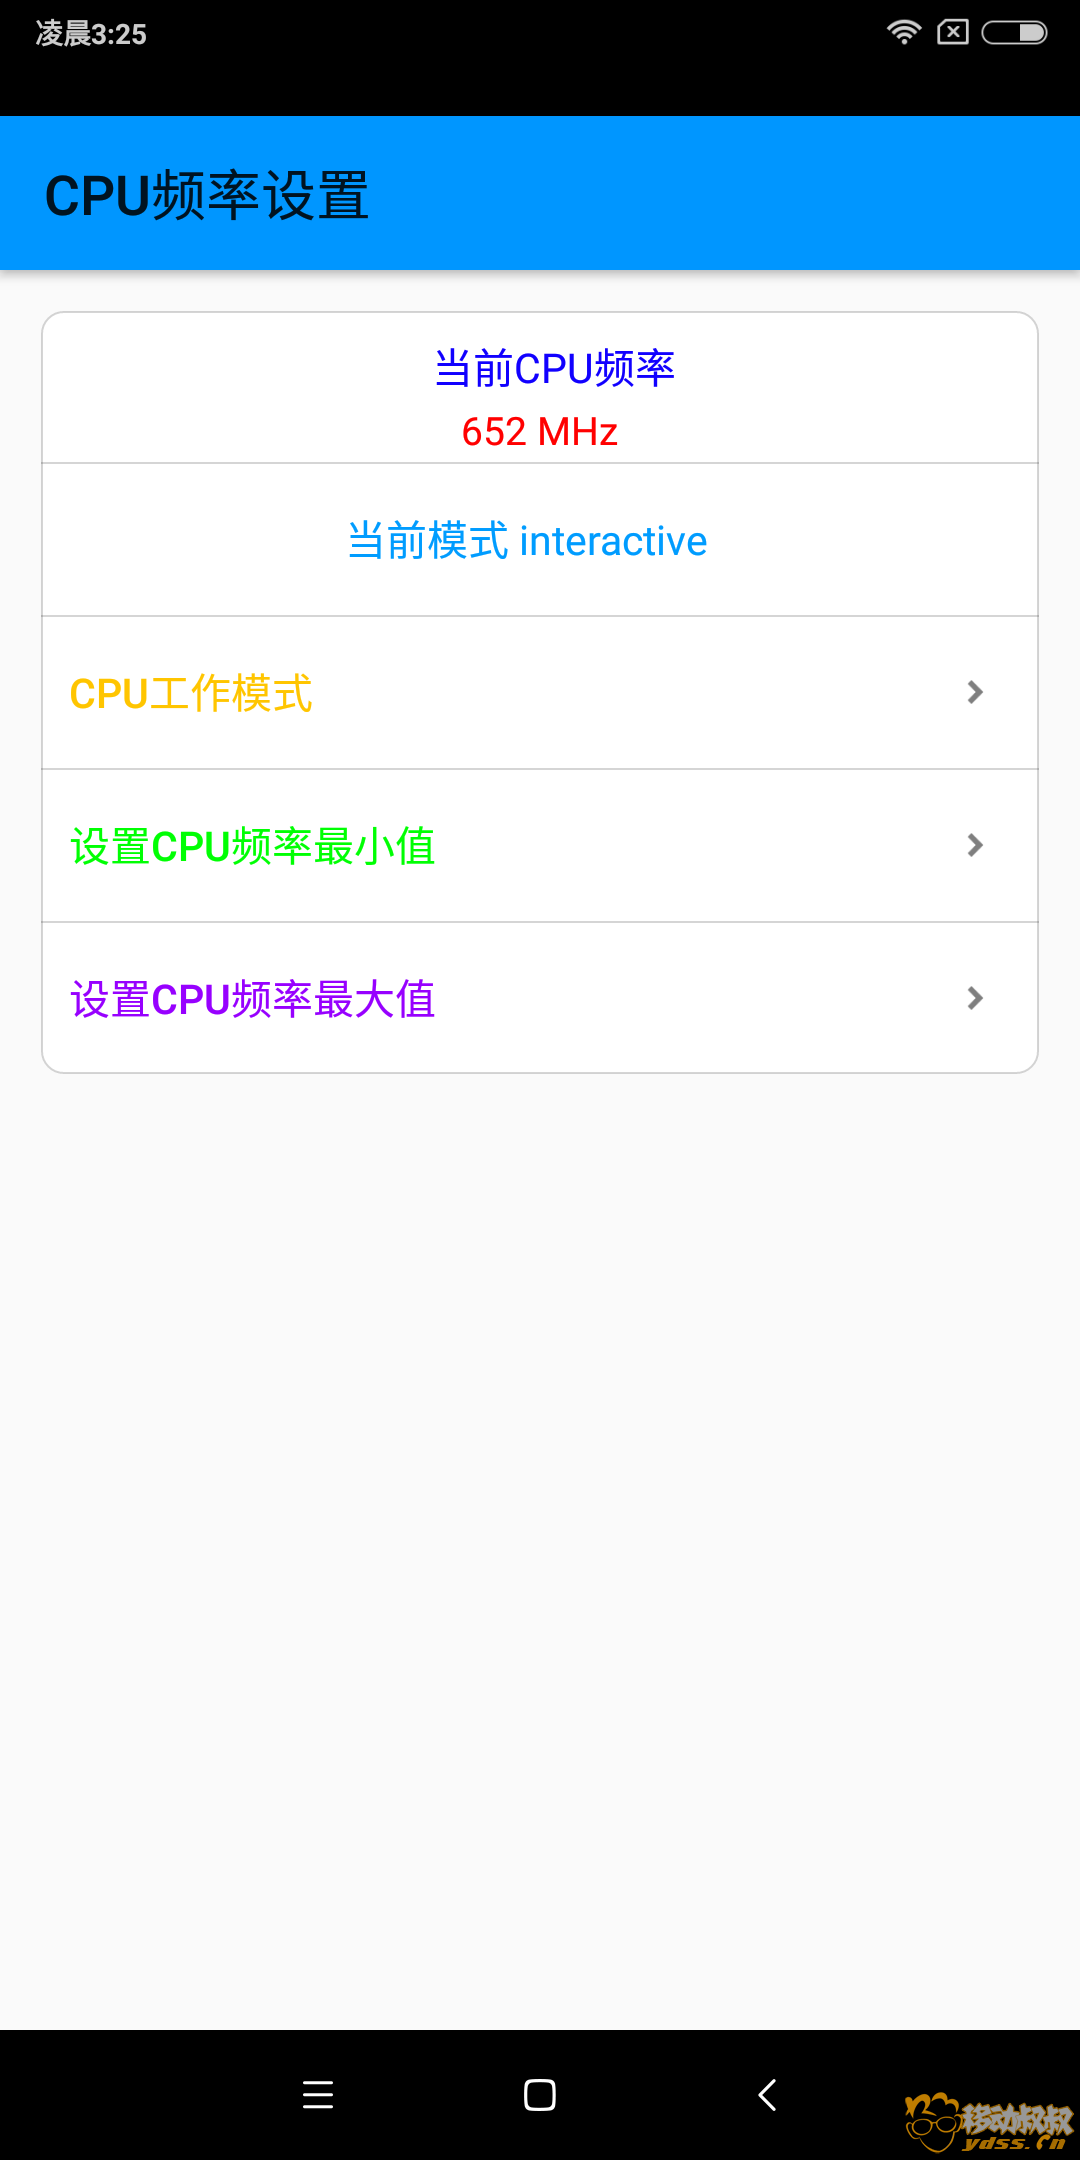 Screenshot_2018-05-07-03-25-26-462_com.zhanhong.t.png